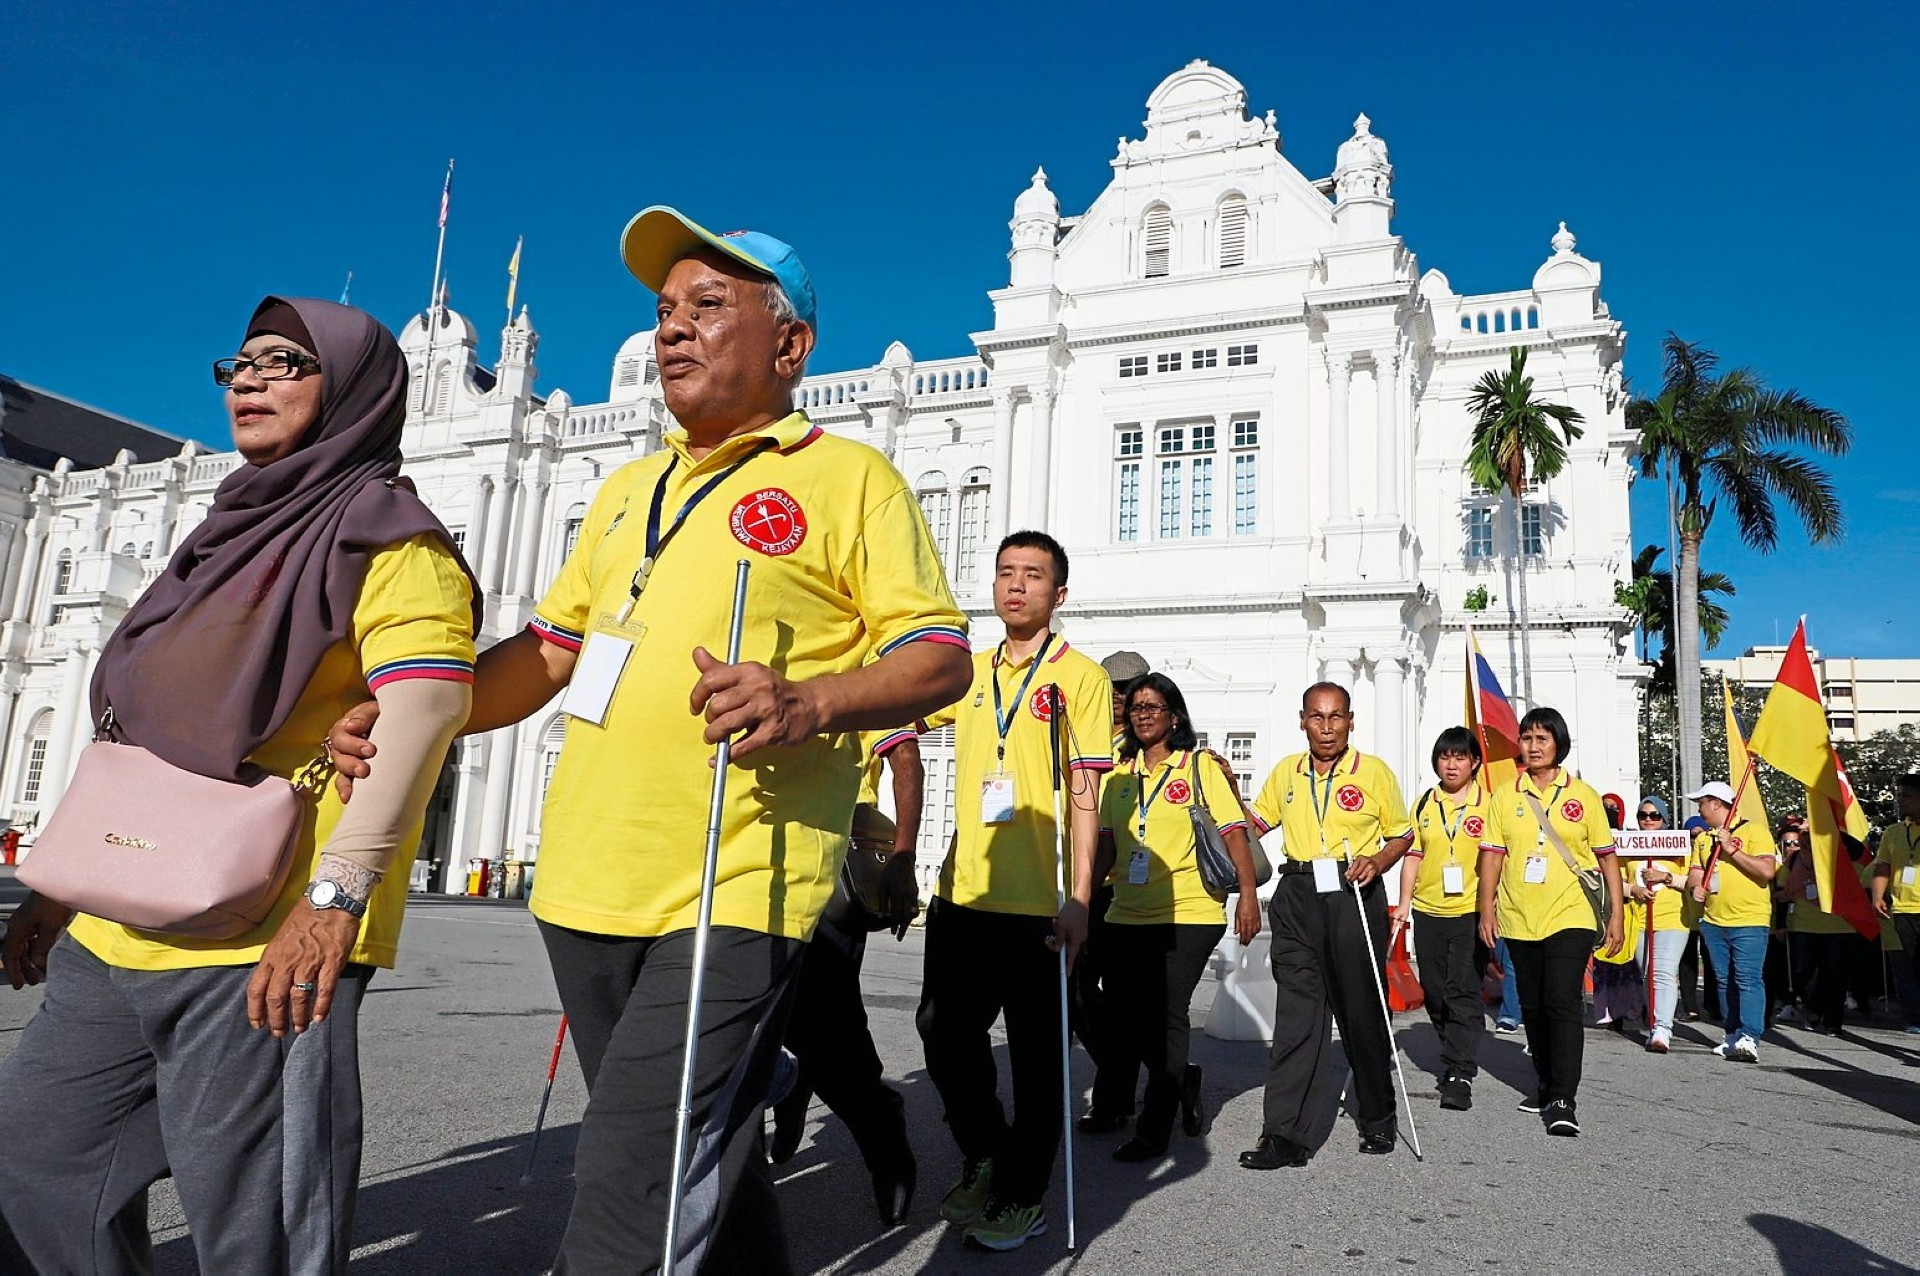 Walking in unity to create awareness for the blind